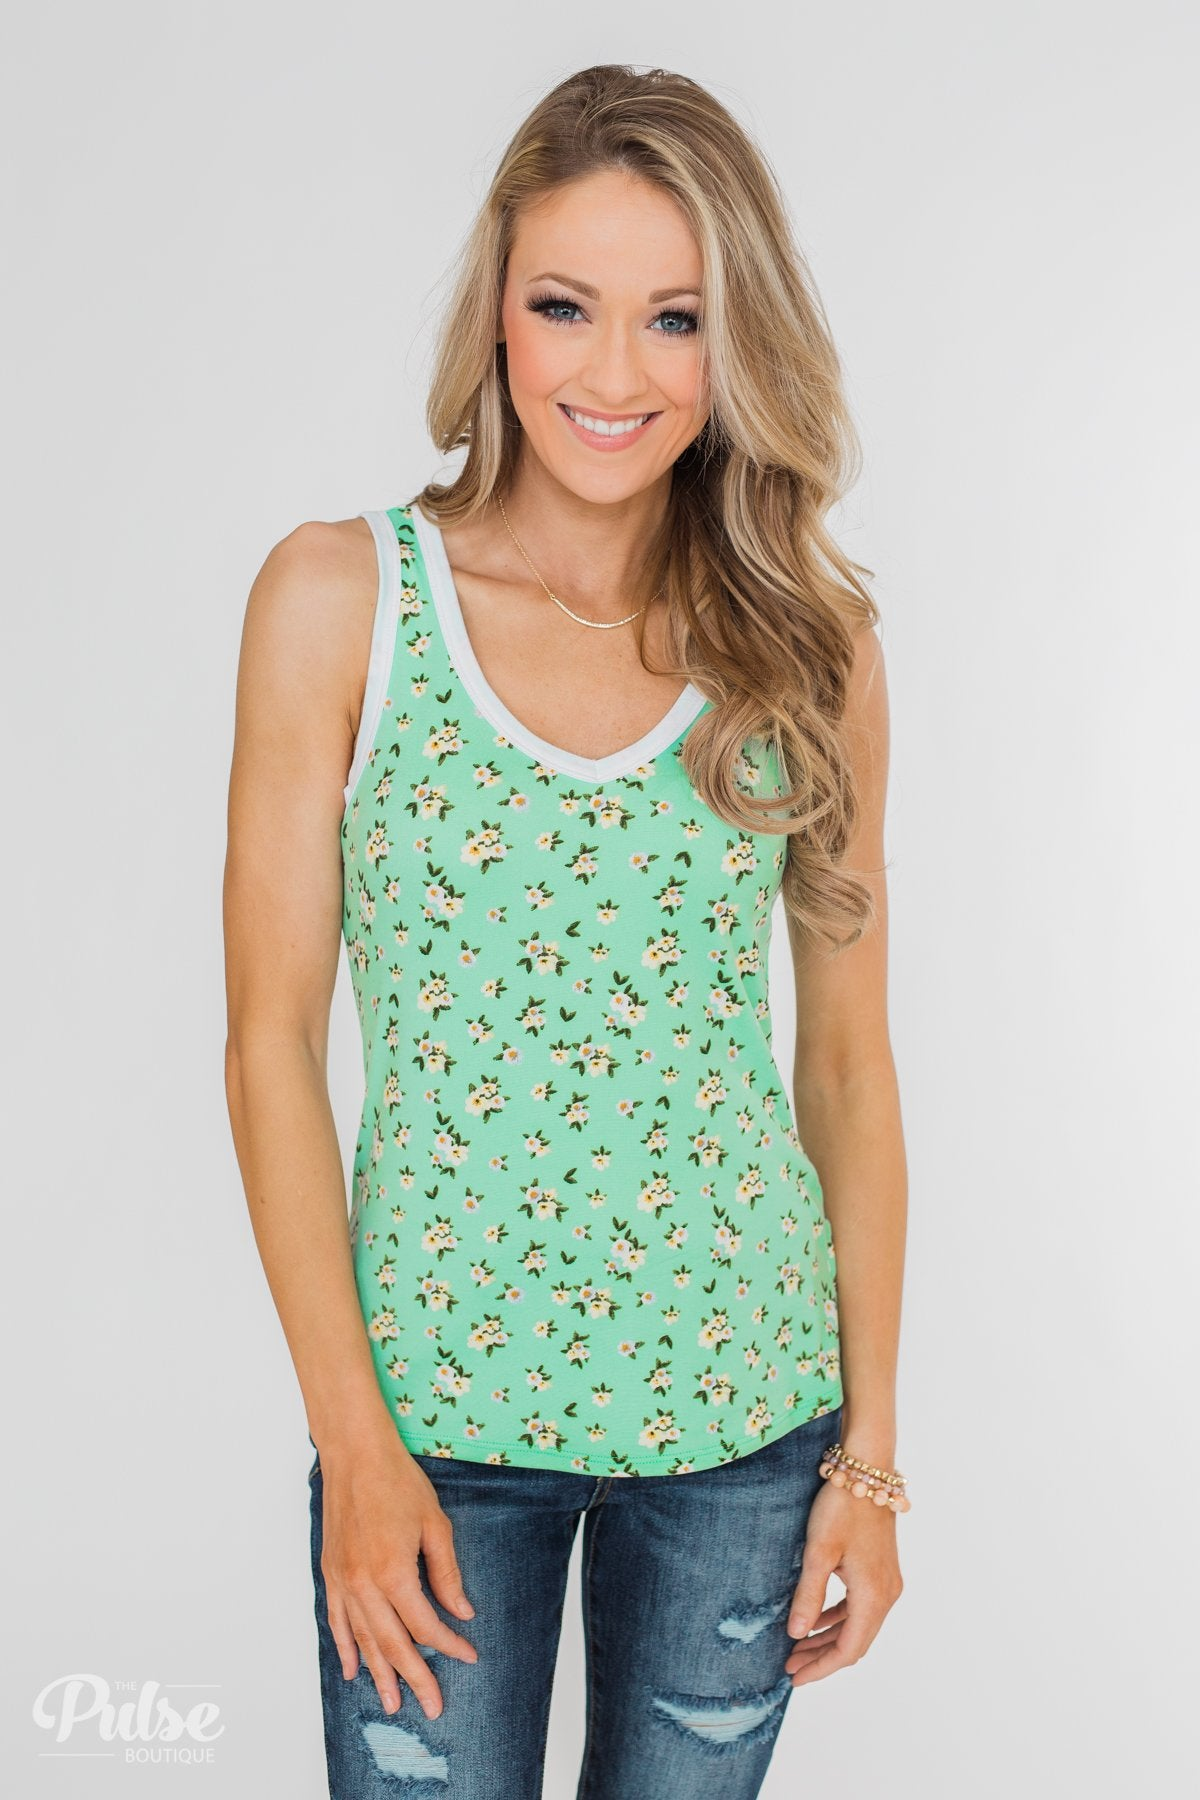 9c5afbef5628c0 Walk Through The Wildflowers V-Neck Tank Top- Mint Blue – The Pulse ...